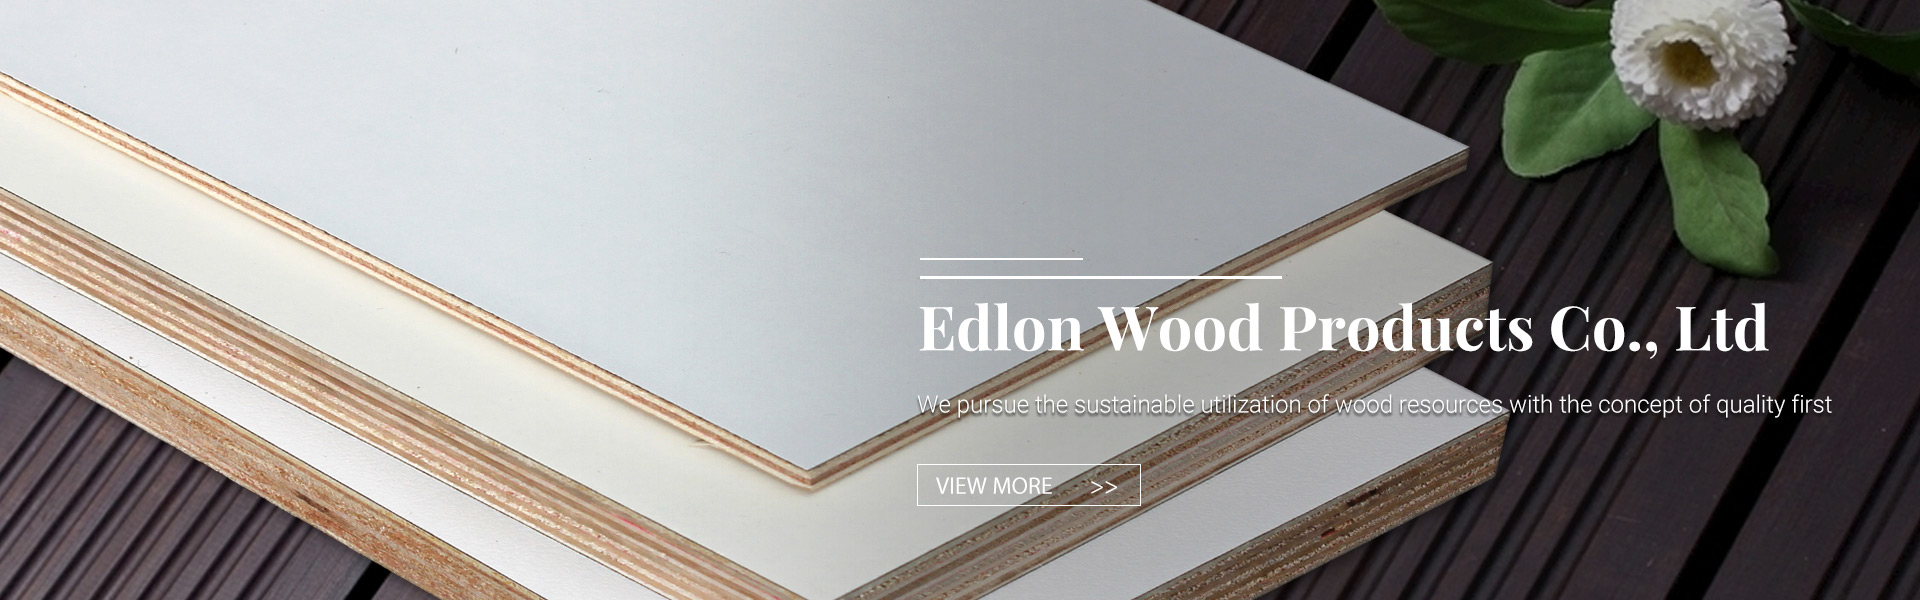 Edlon Wood Products Co, Ltd